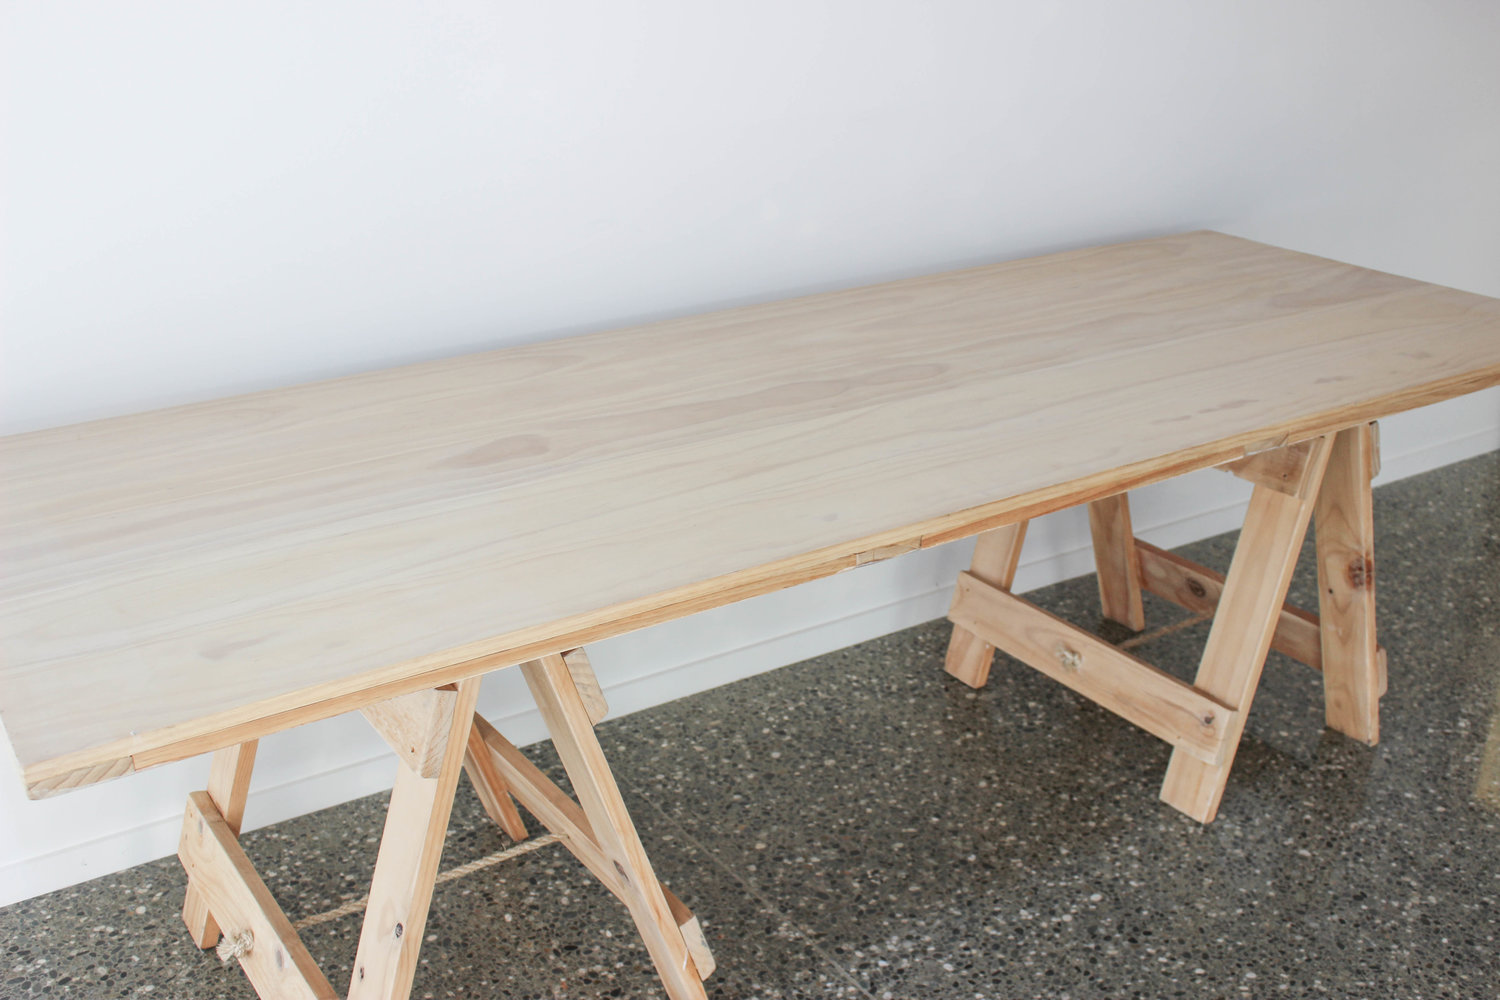 Wooden Trestle Table Got It Covered